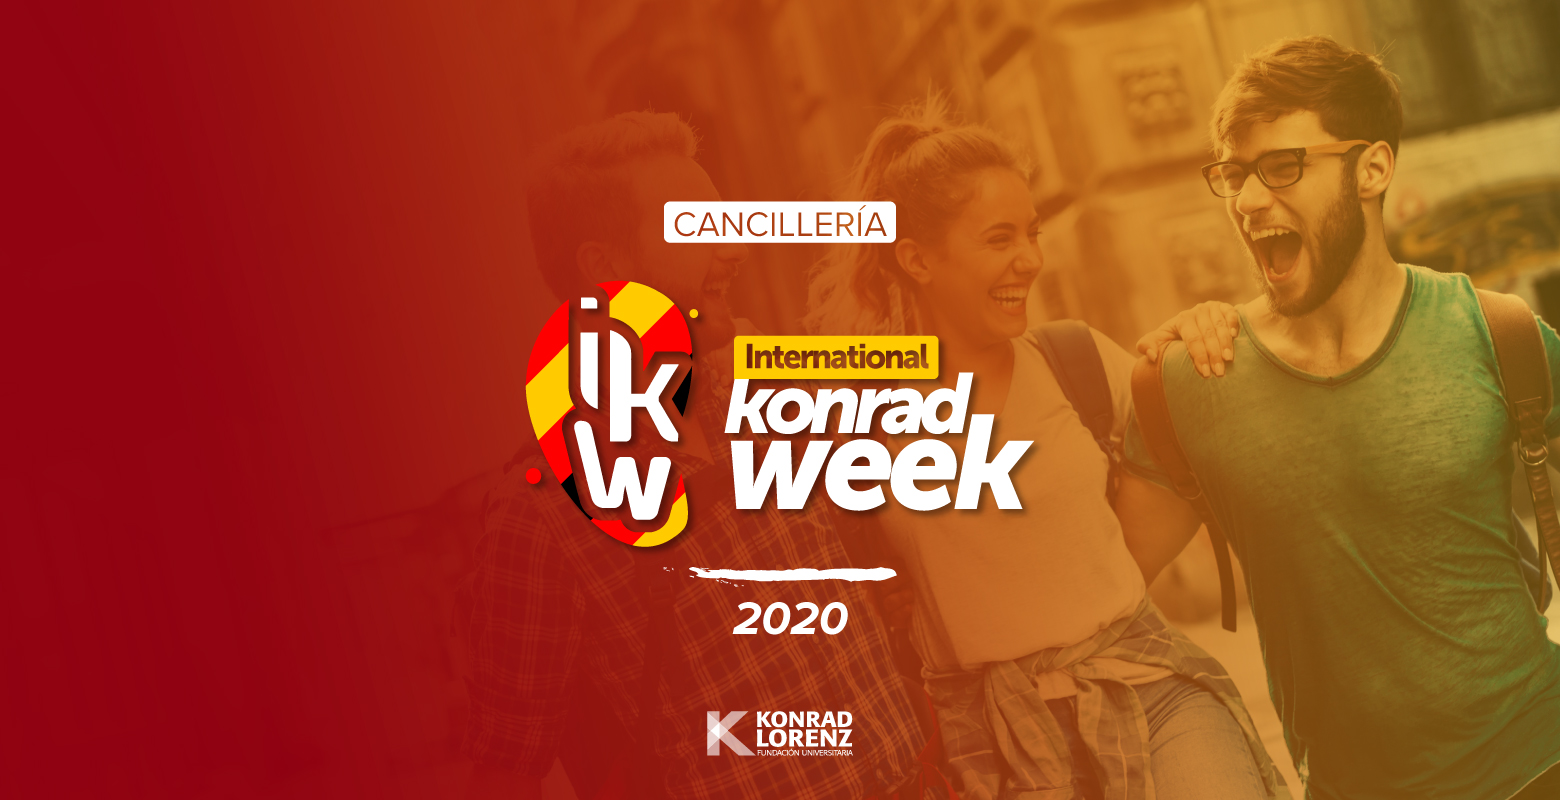 Cancillería: International Konrad Week 2020